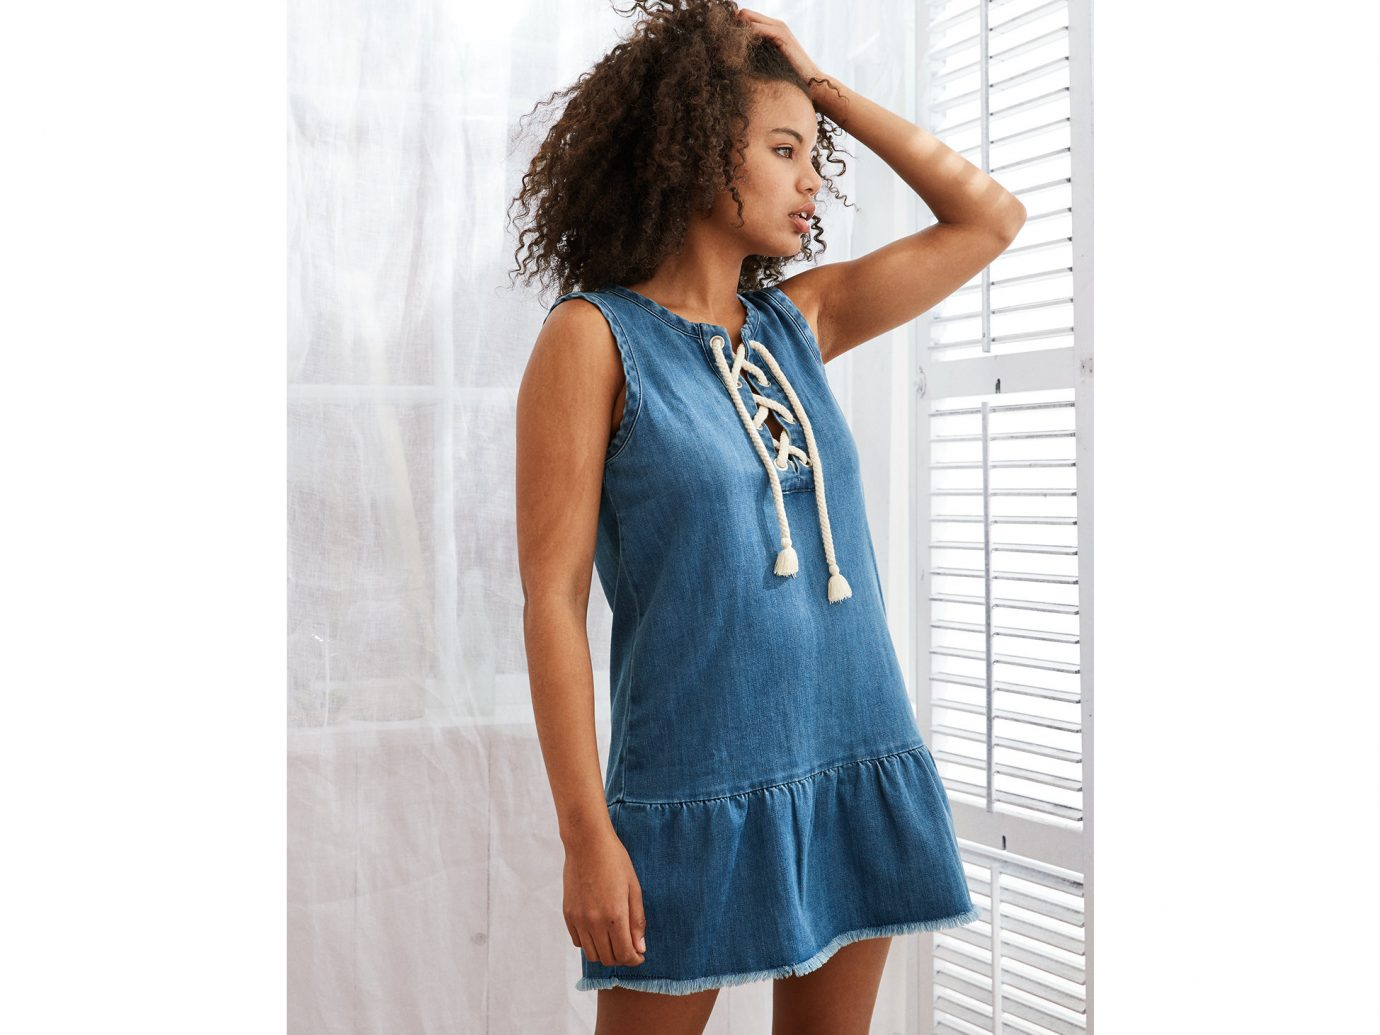 Aerie Chambray Lace-Up Dress Cute Beach Cover-Ups